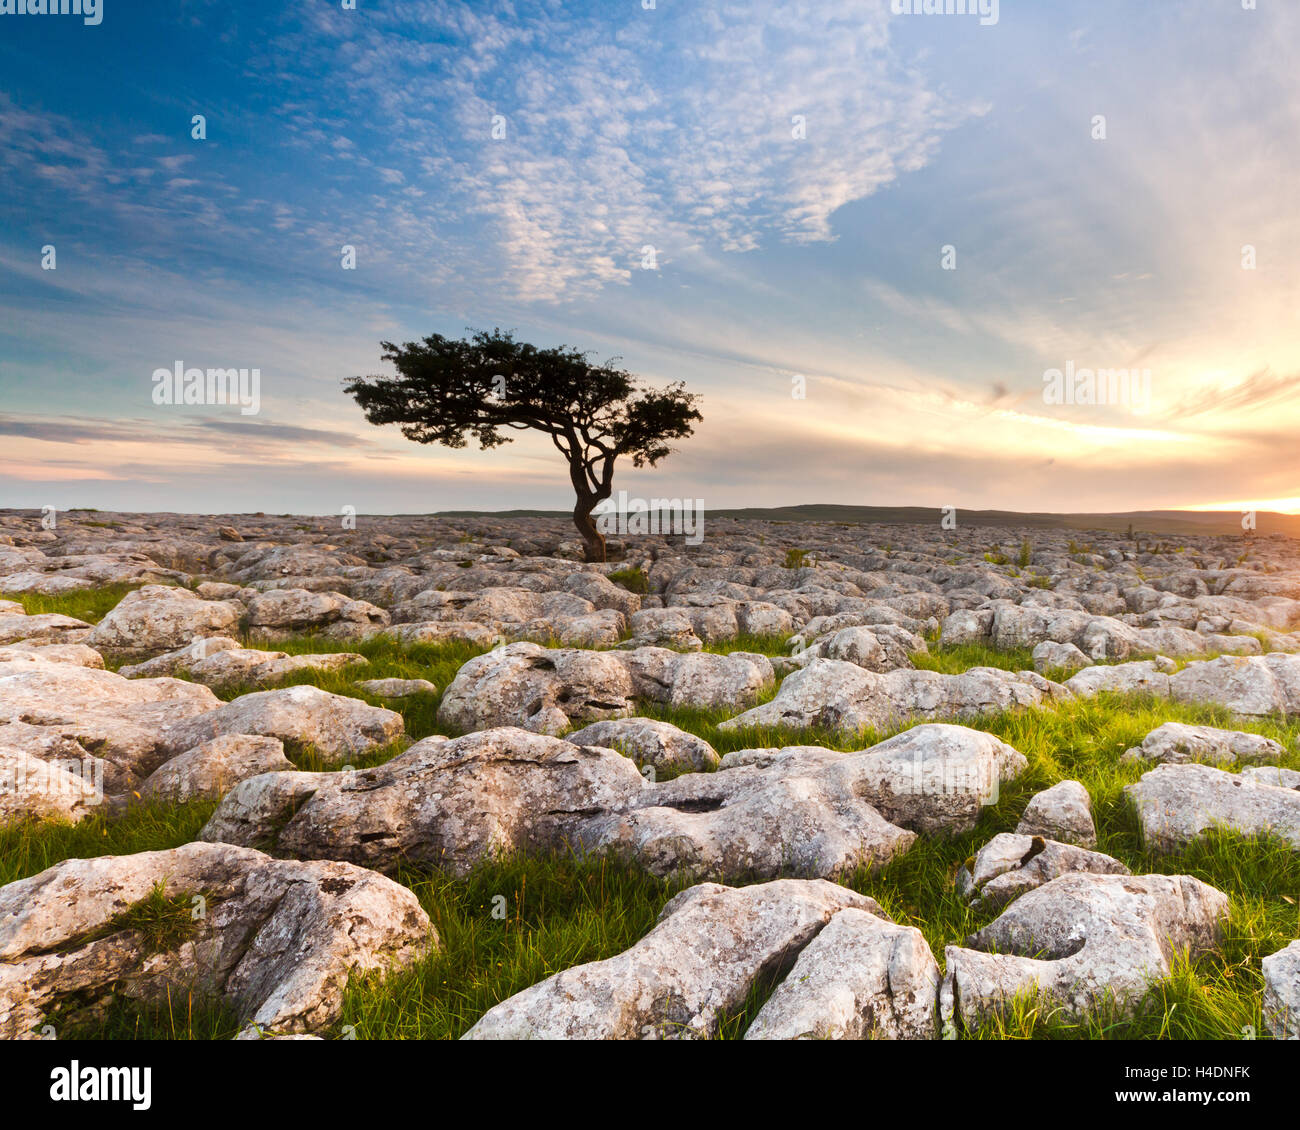 Lone tree silhouetted against a sunset sky with mackerel clouds at the limestone pavement at Conistone in the Yorkshire - Stock Image